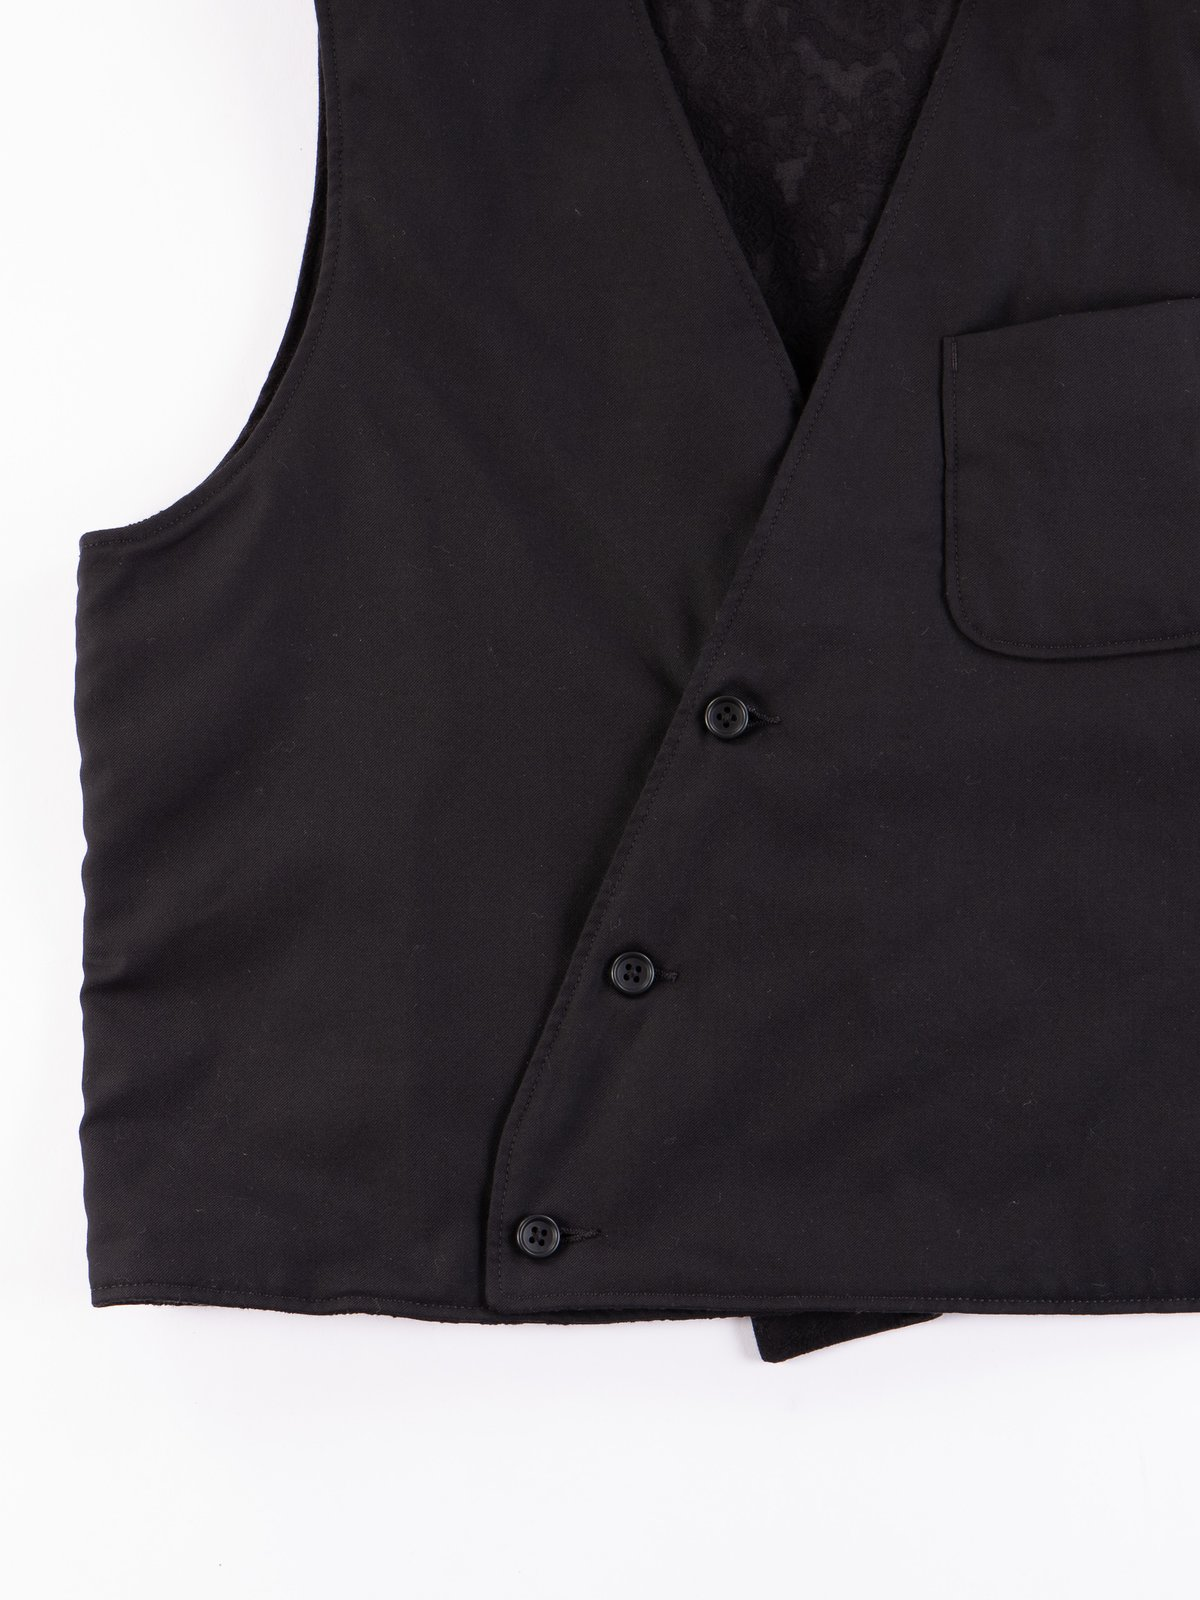 Black Worsted Wool Gabardine Reversible Vest - Image 5